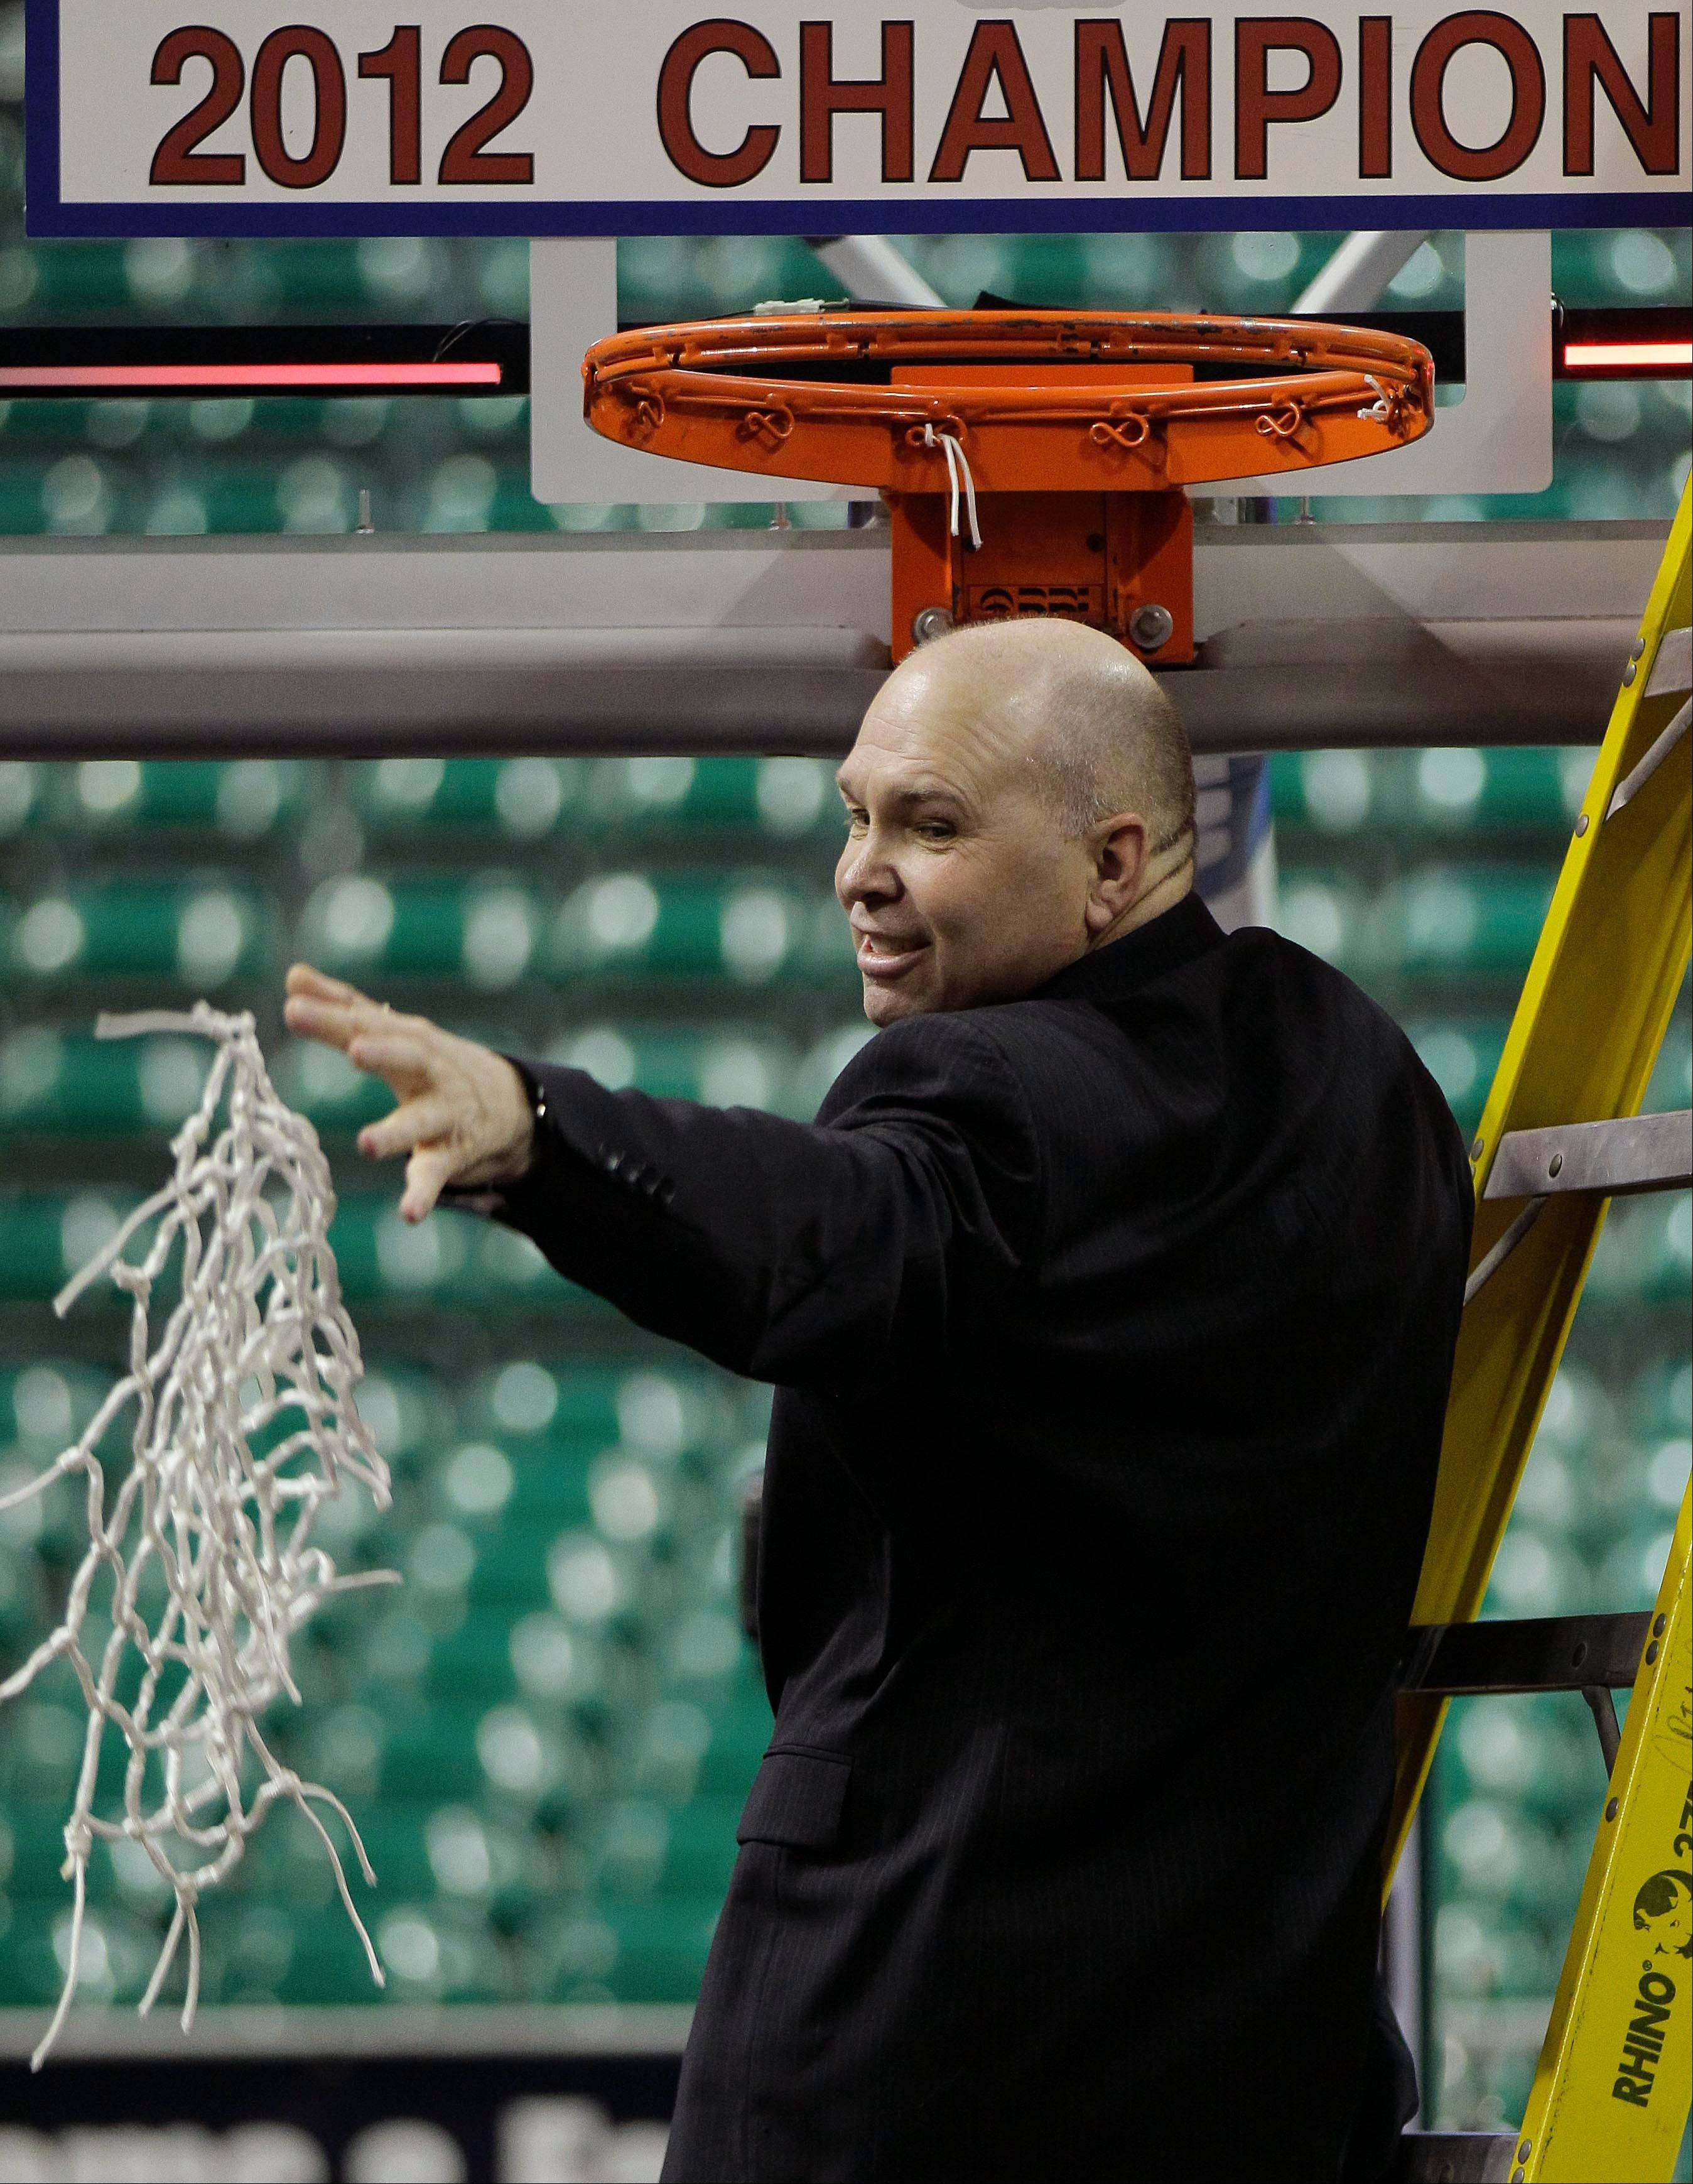 Saint Mary's coach Randy Bennett throws the net to his players after cutting it down after beating Gonzaga 78-74 in overtime in an NCAA college basketball game in the championship of the West Coast Conference Tournament in Las Vegas.